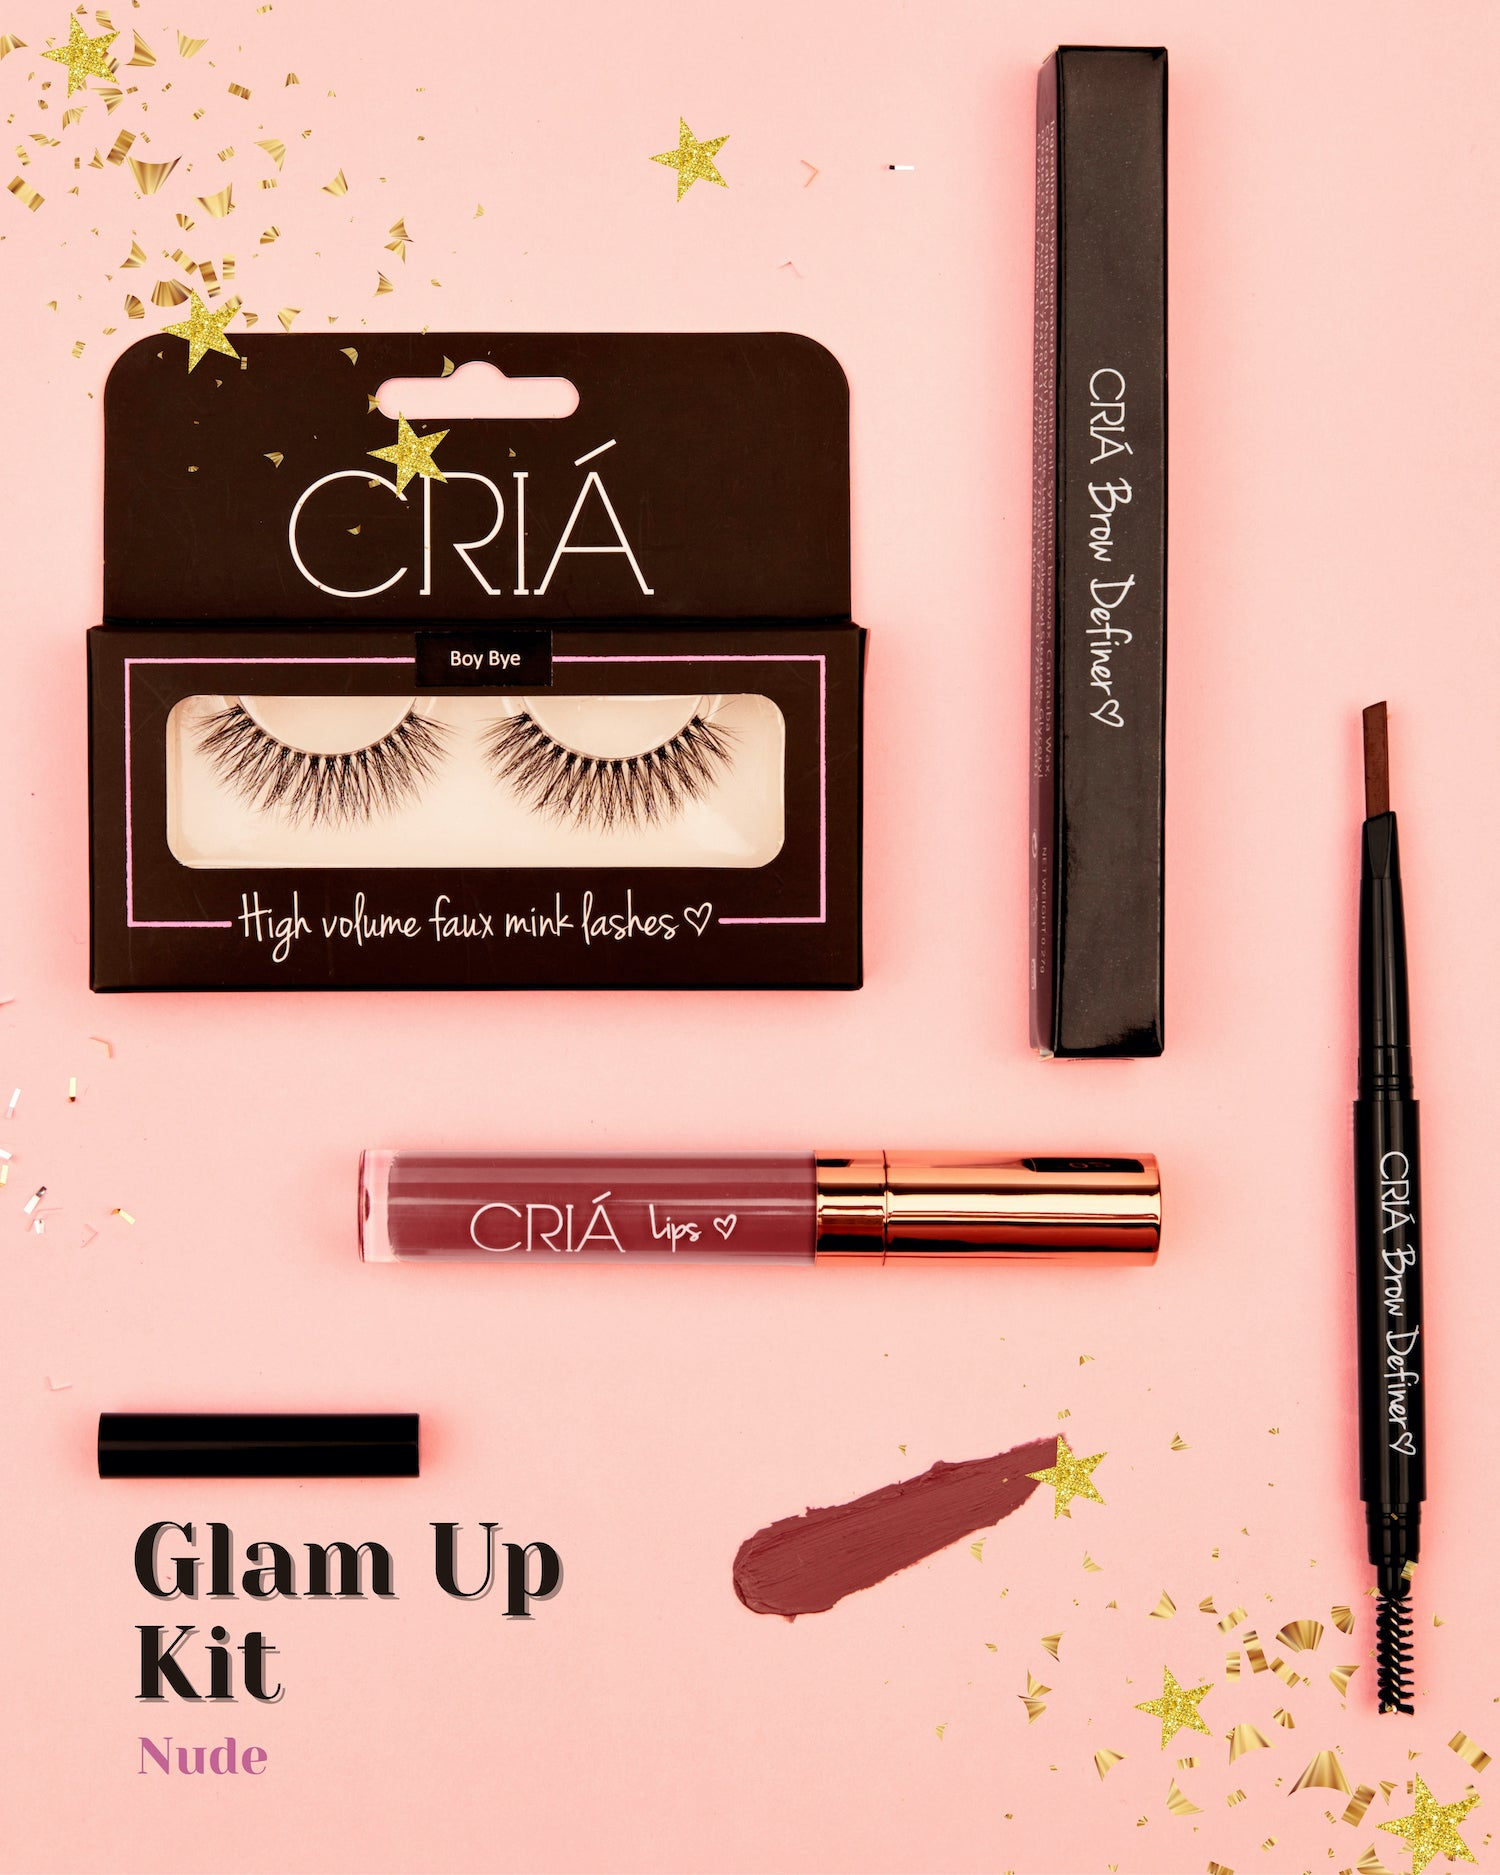 Glam Up Kit (Nude) - CRIÁ Cosmetics